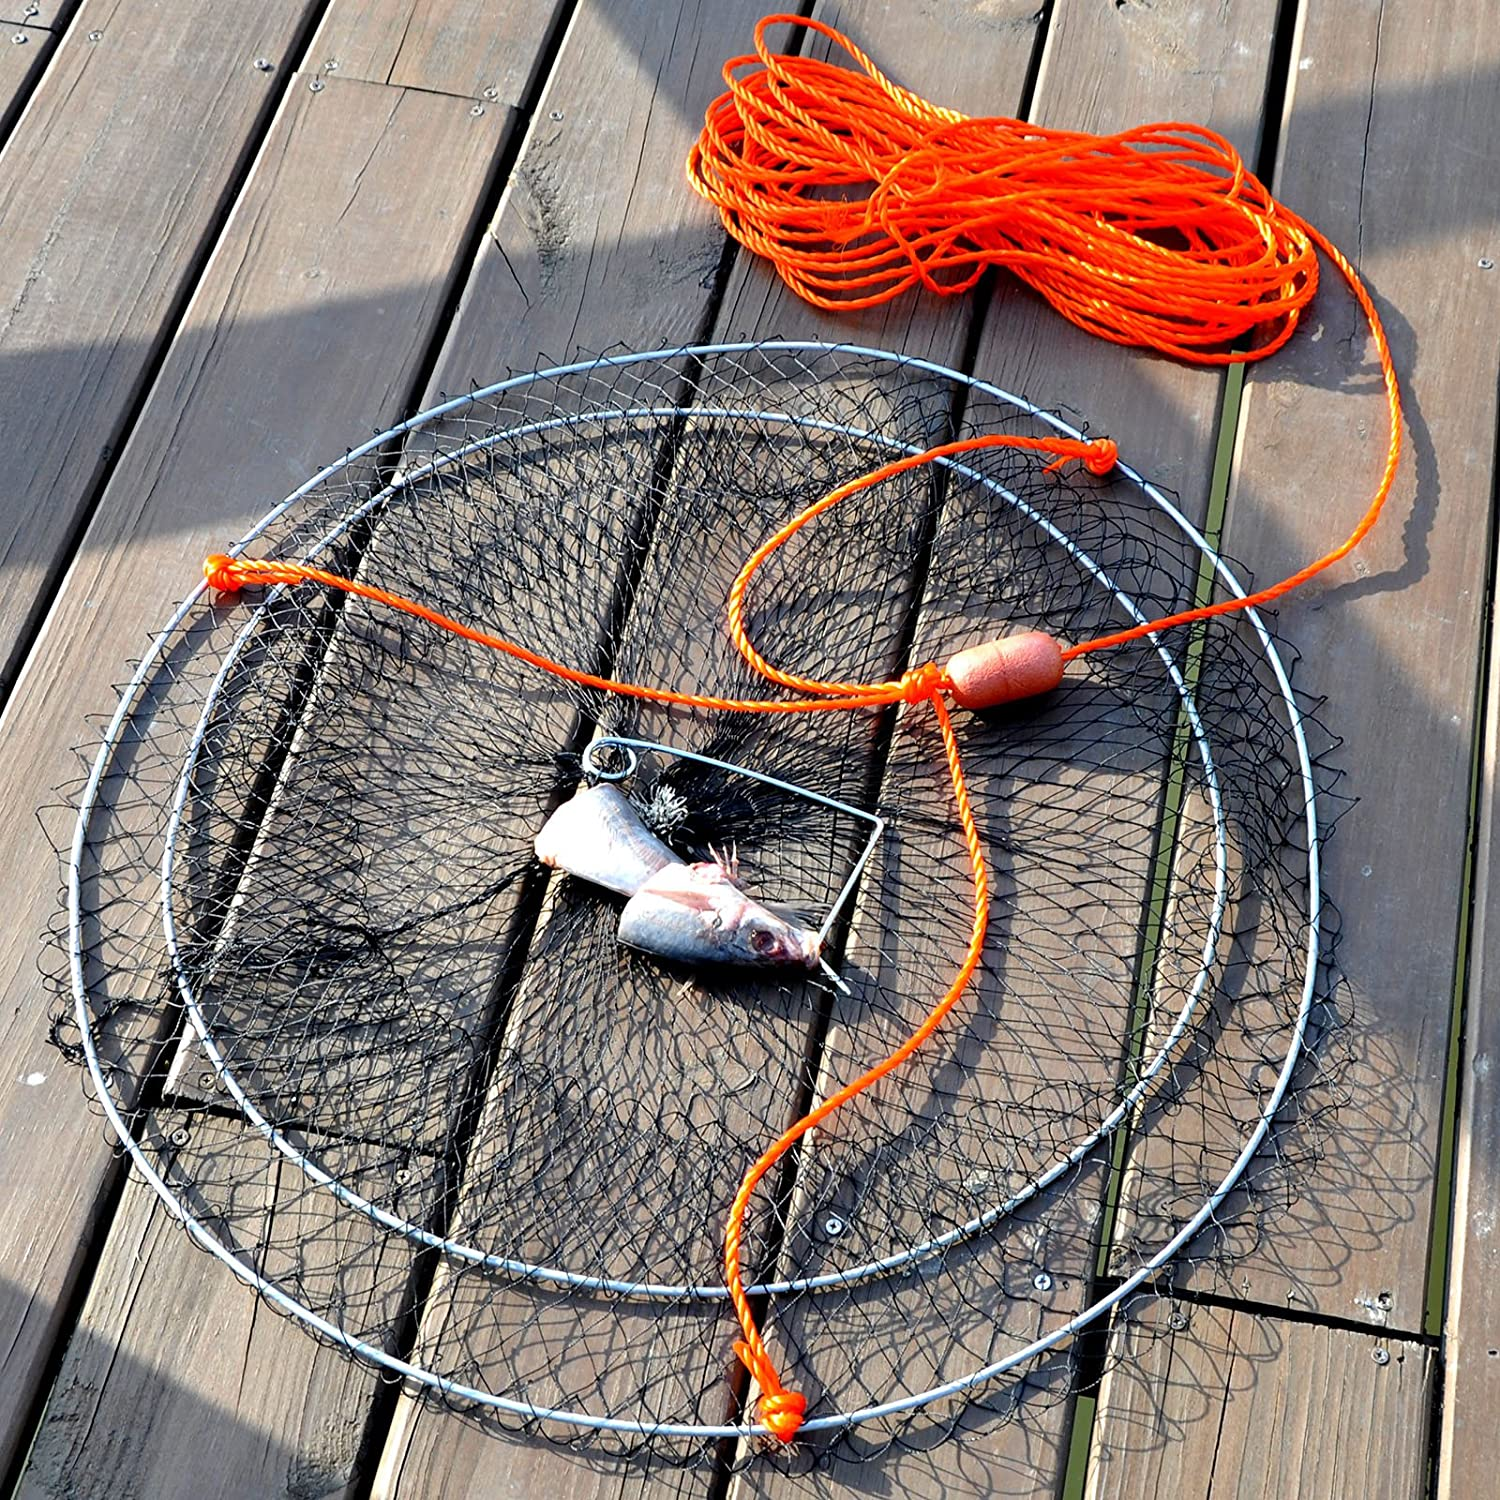 Amazon.com : Palmyth Crab Nets Two Ring Wire Crabbing Lobster Shrimp ...